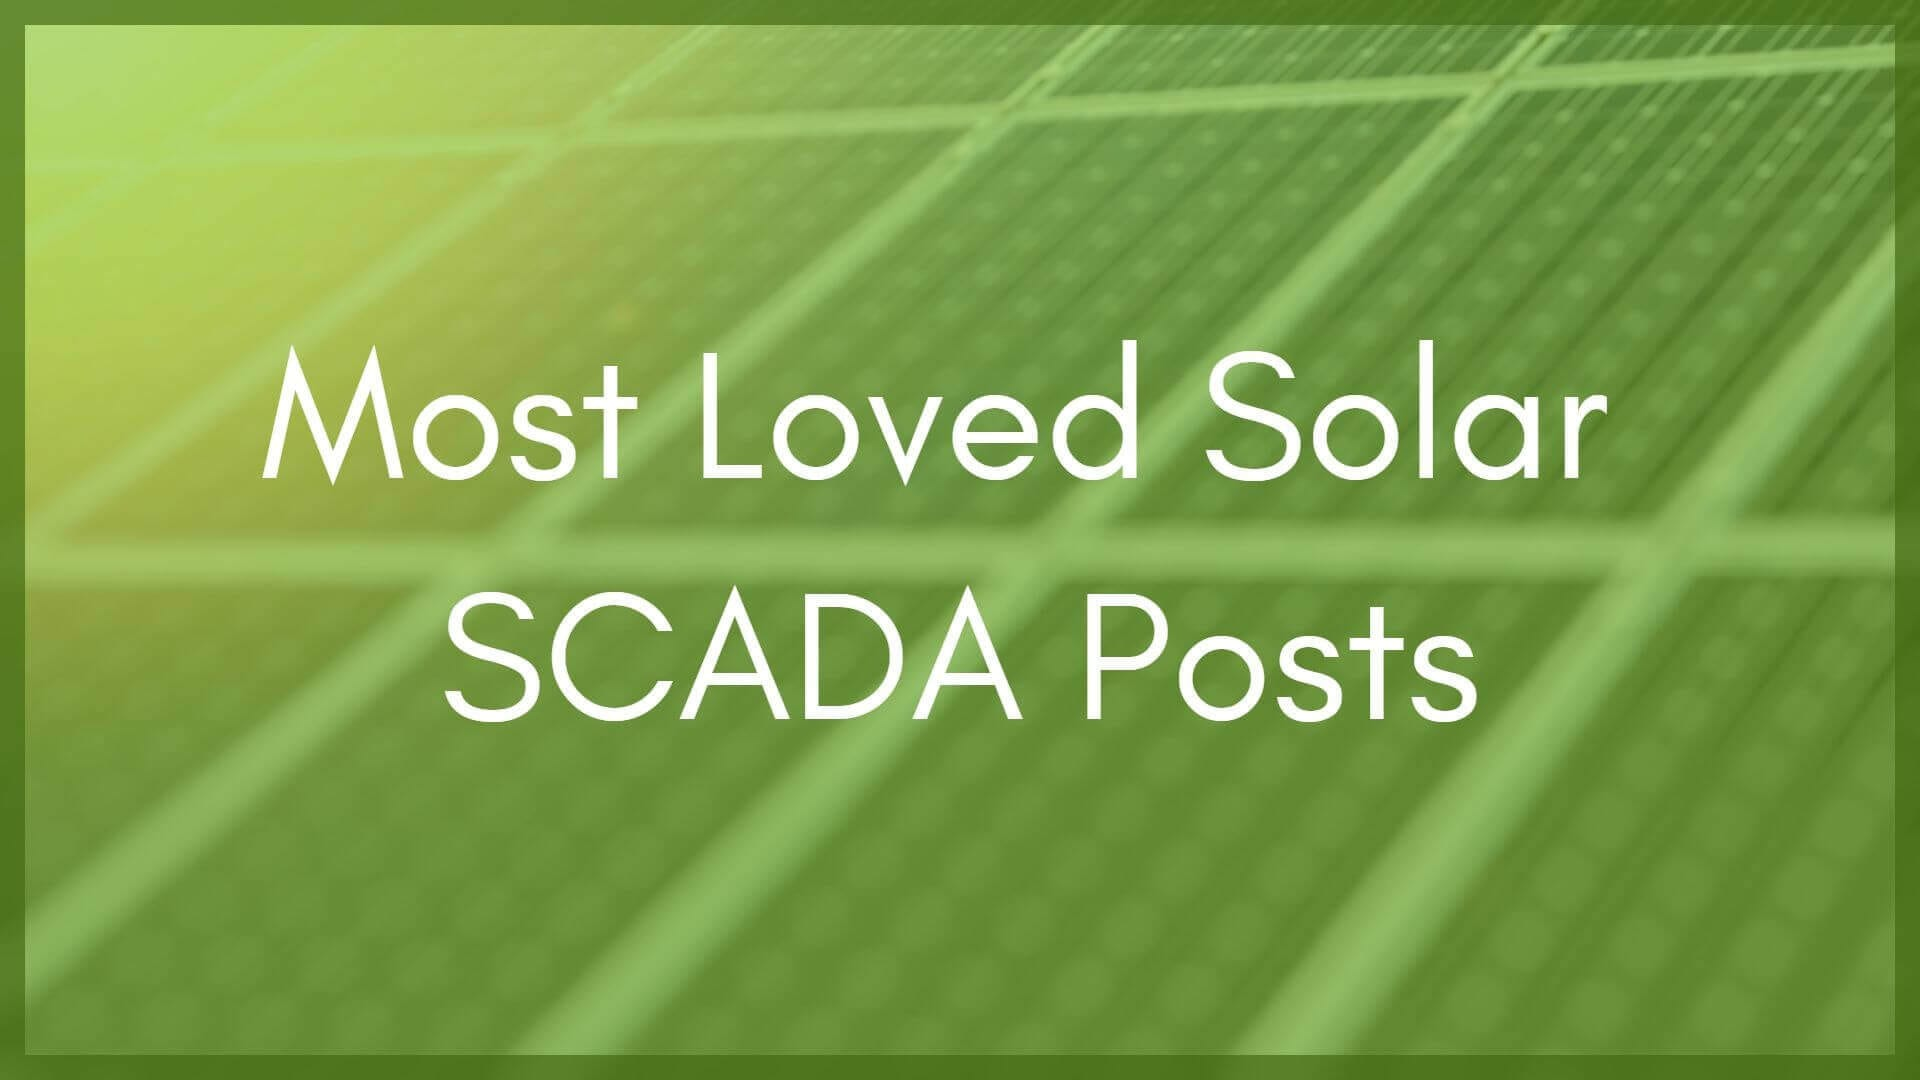 Our Top 7 Most-Loved Solar SCADA Articles